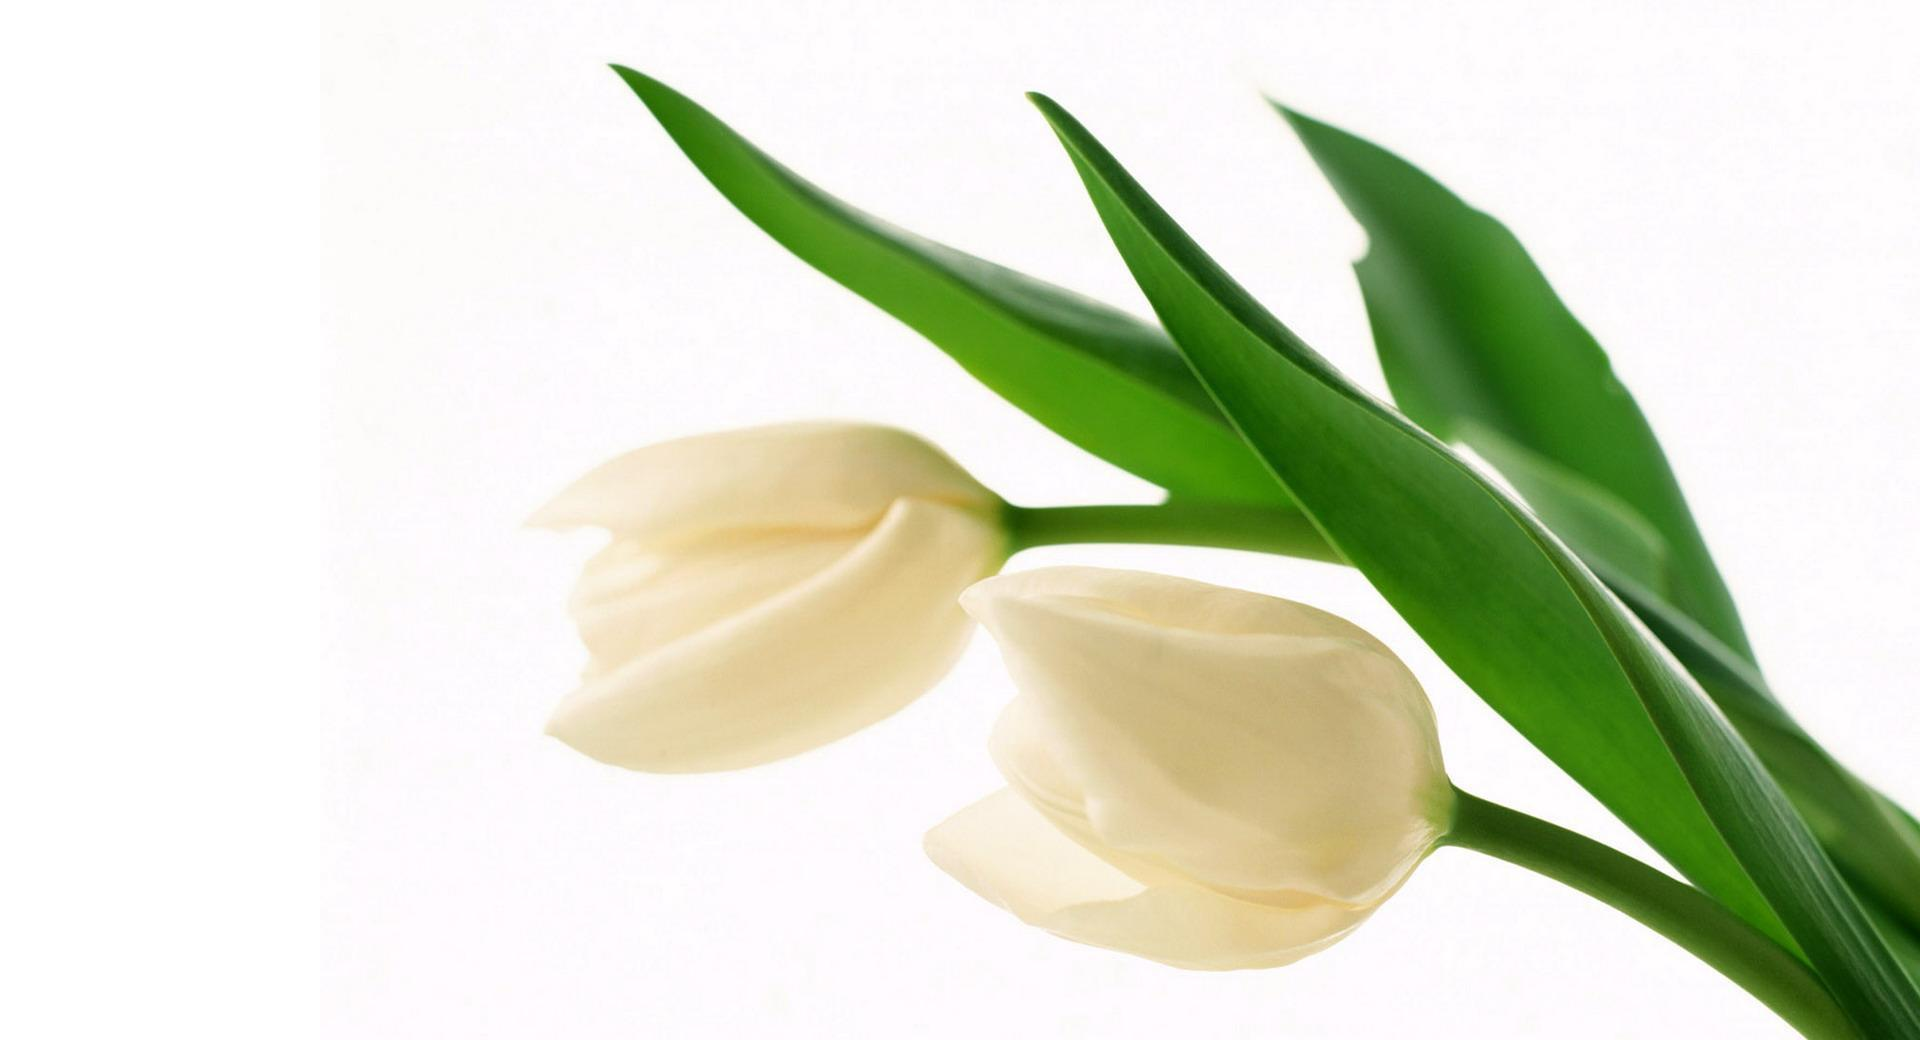 White Tulips wallpapers HD quality